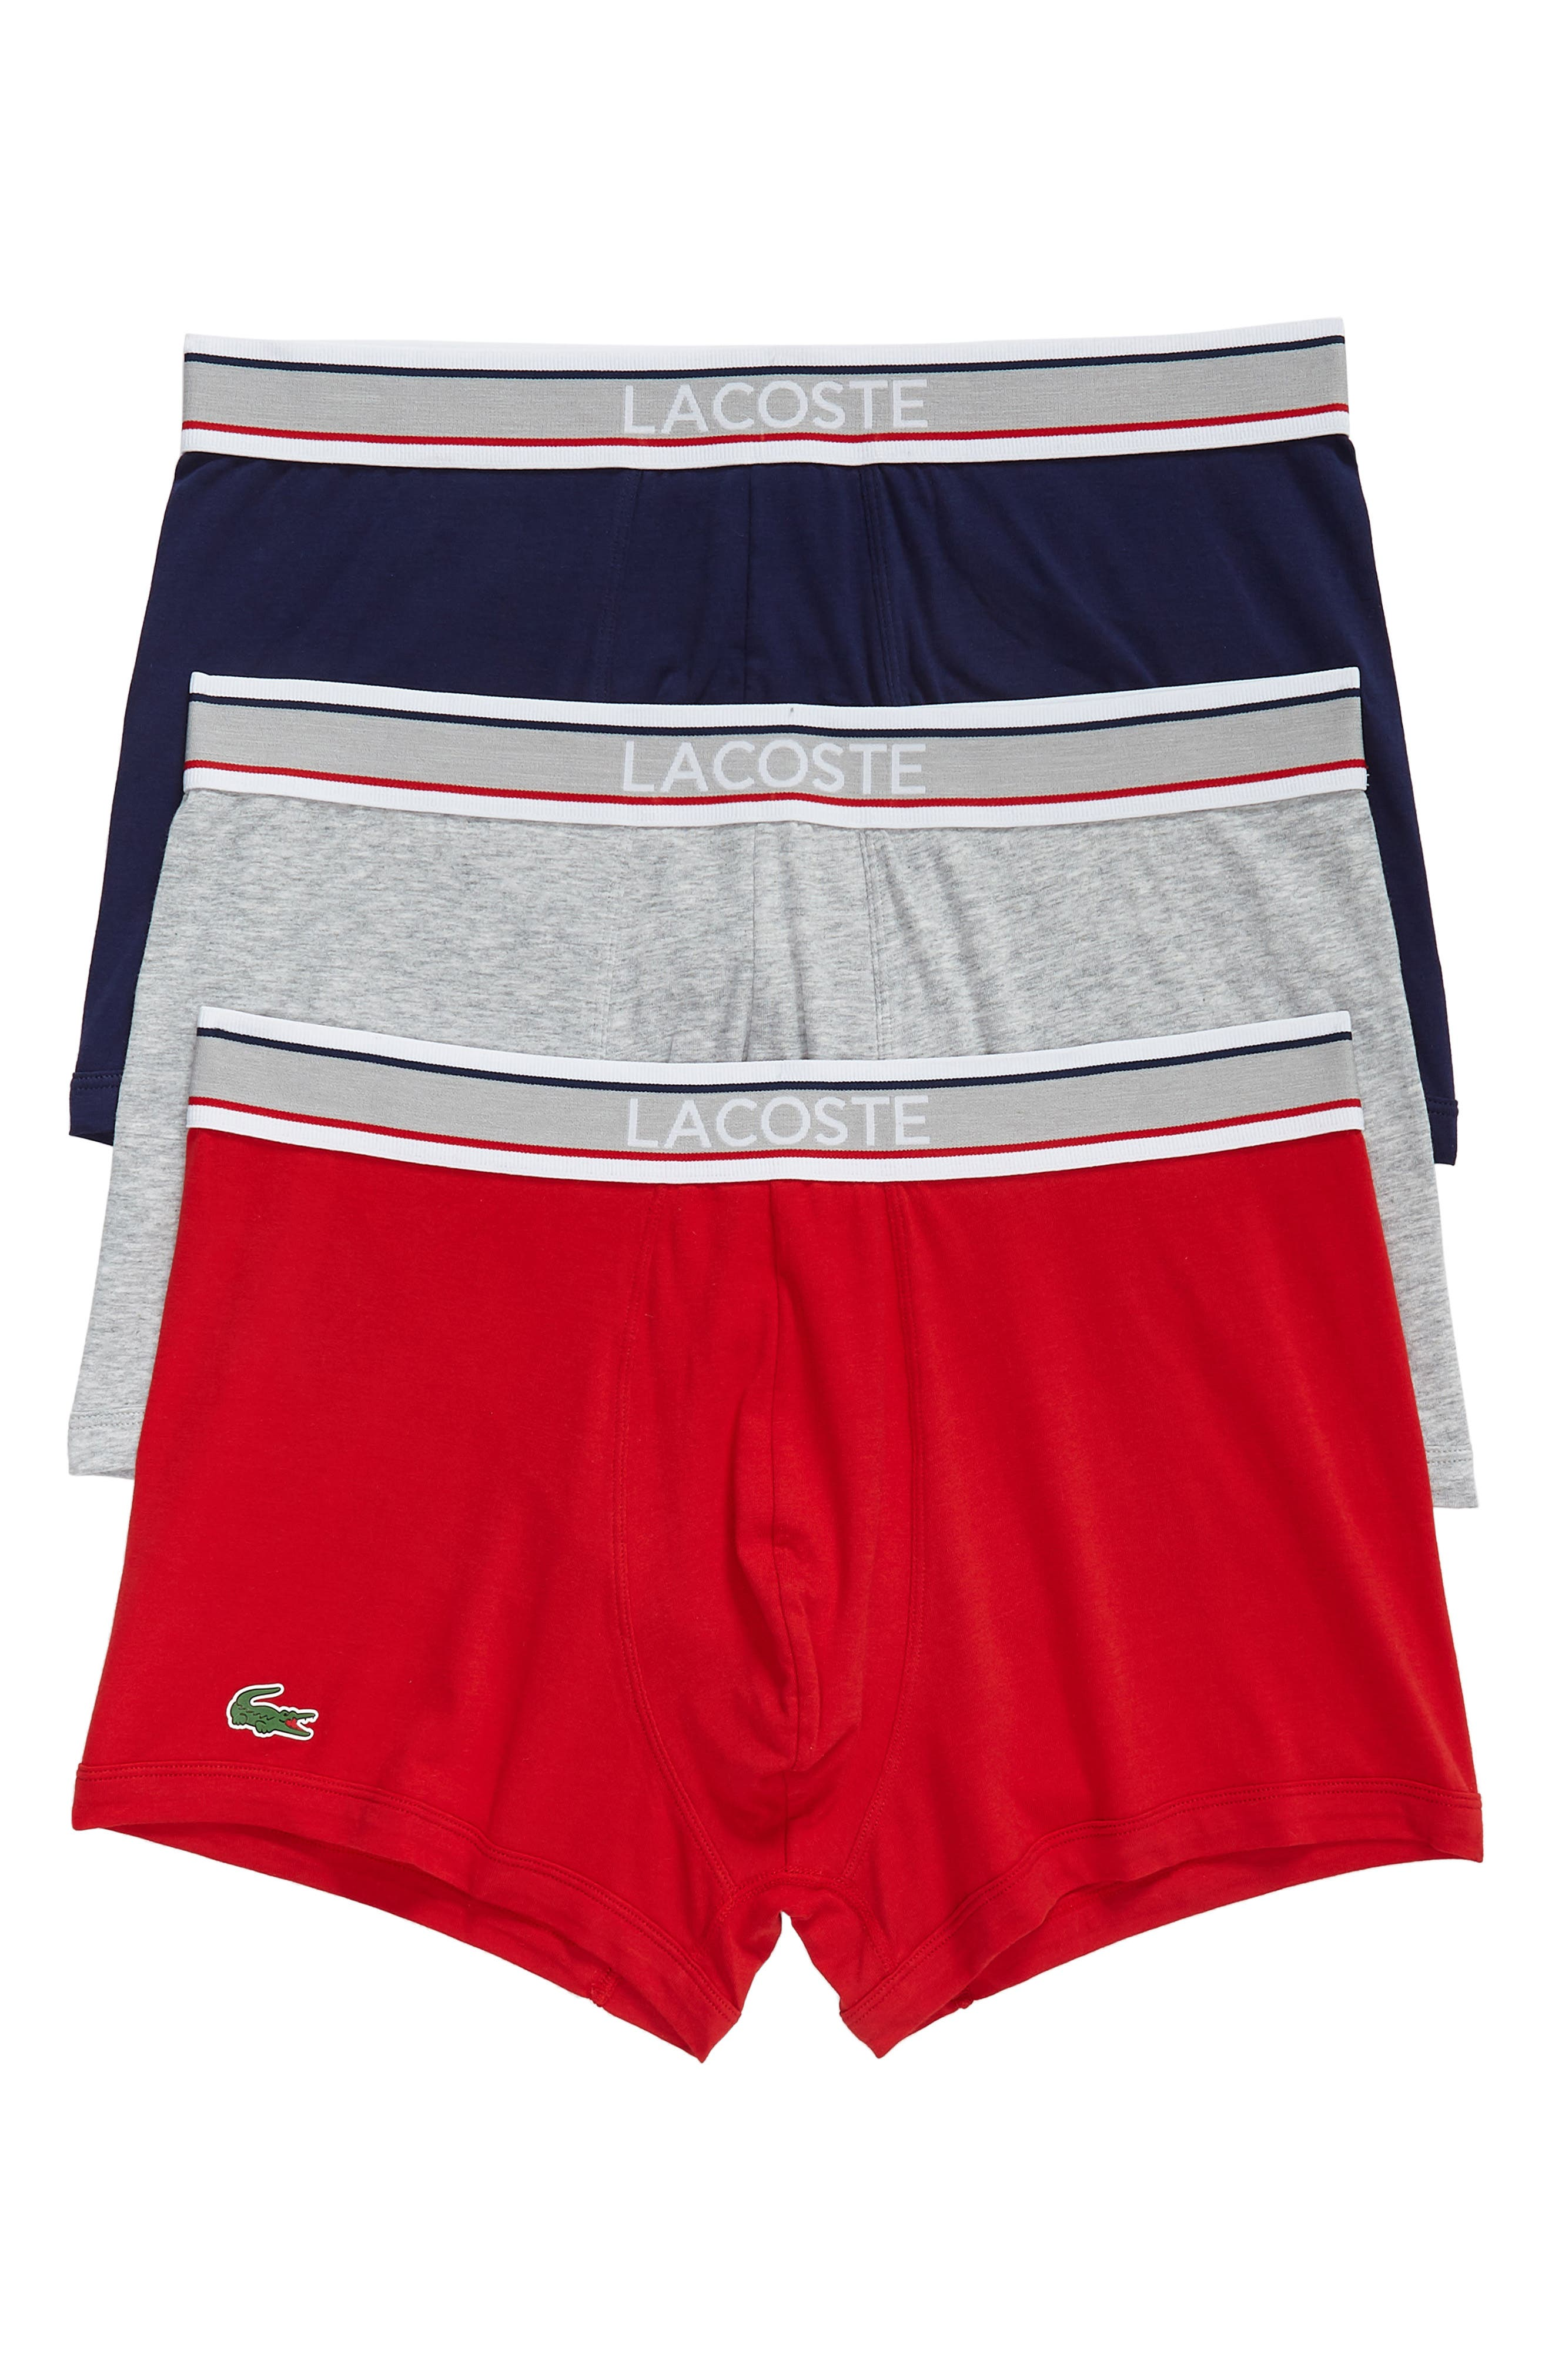 3-Pack Trunks,                         Main,                         color, Blue/ Grey/ Cherry